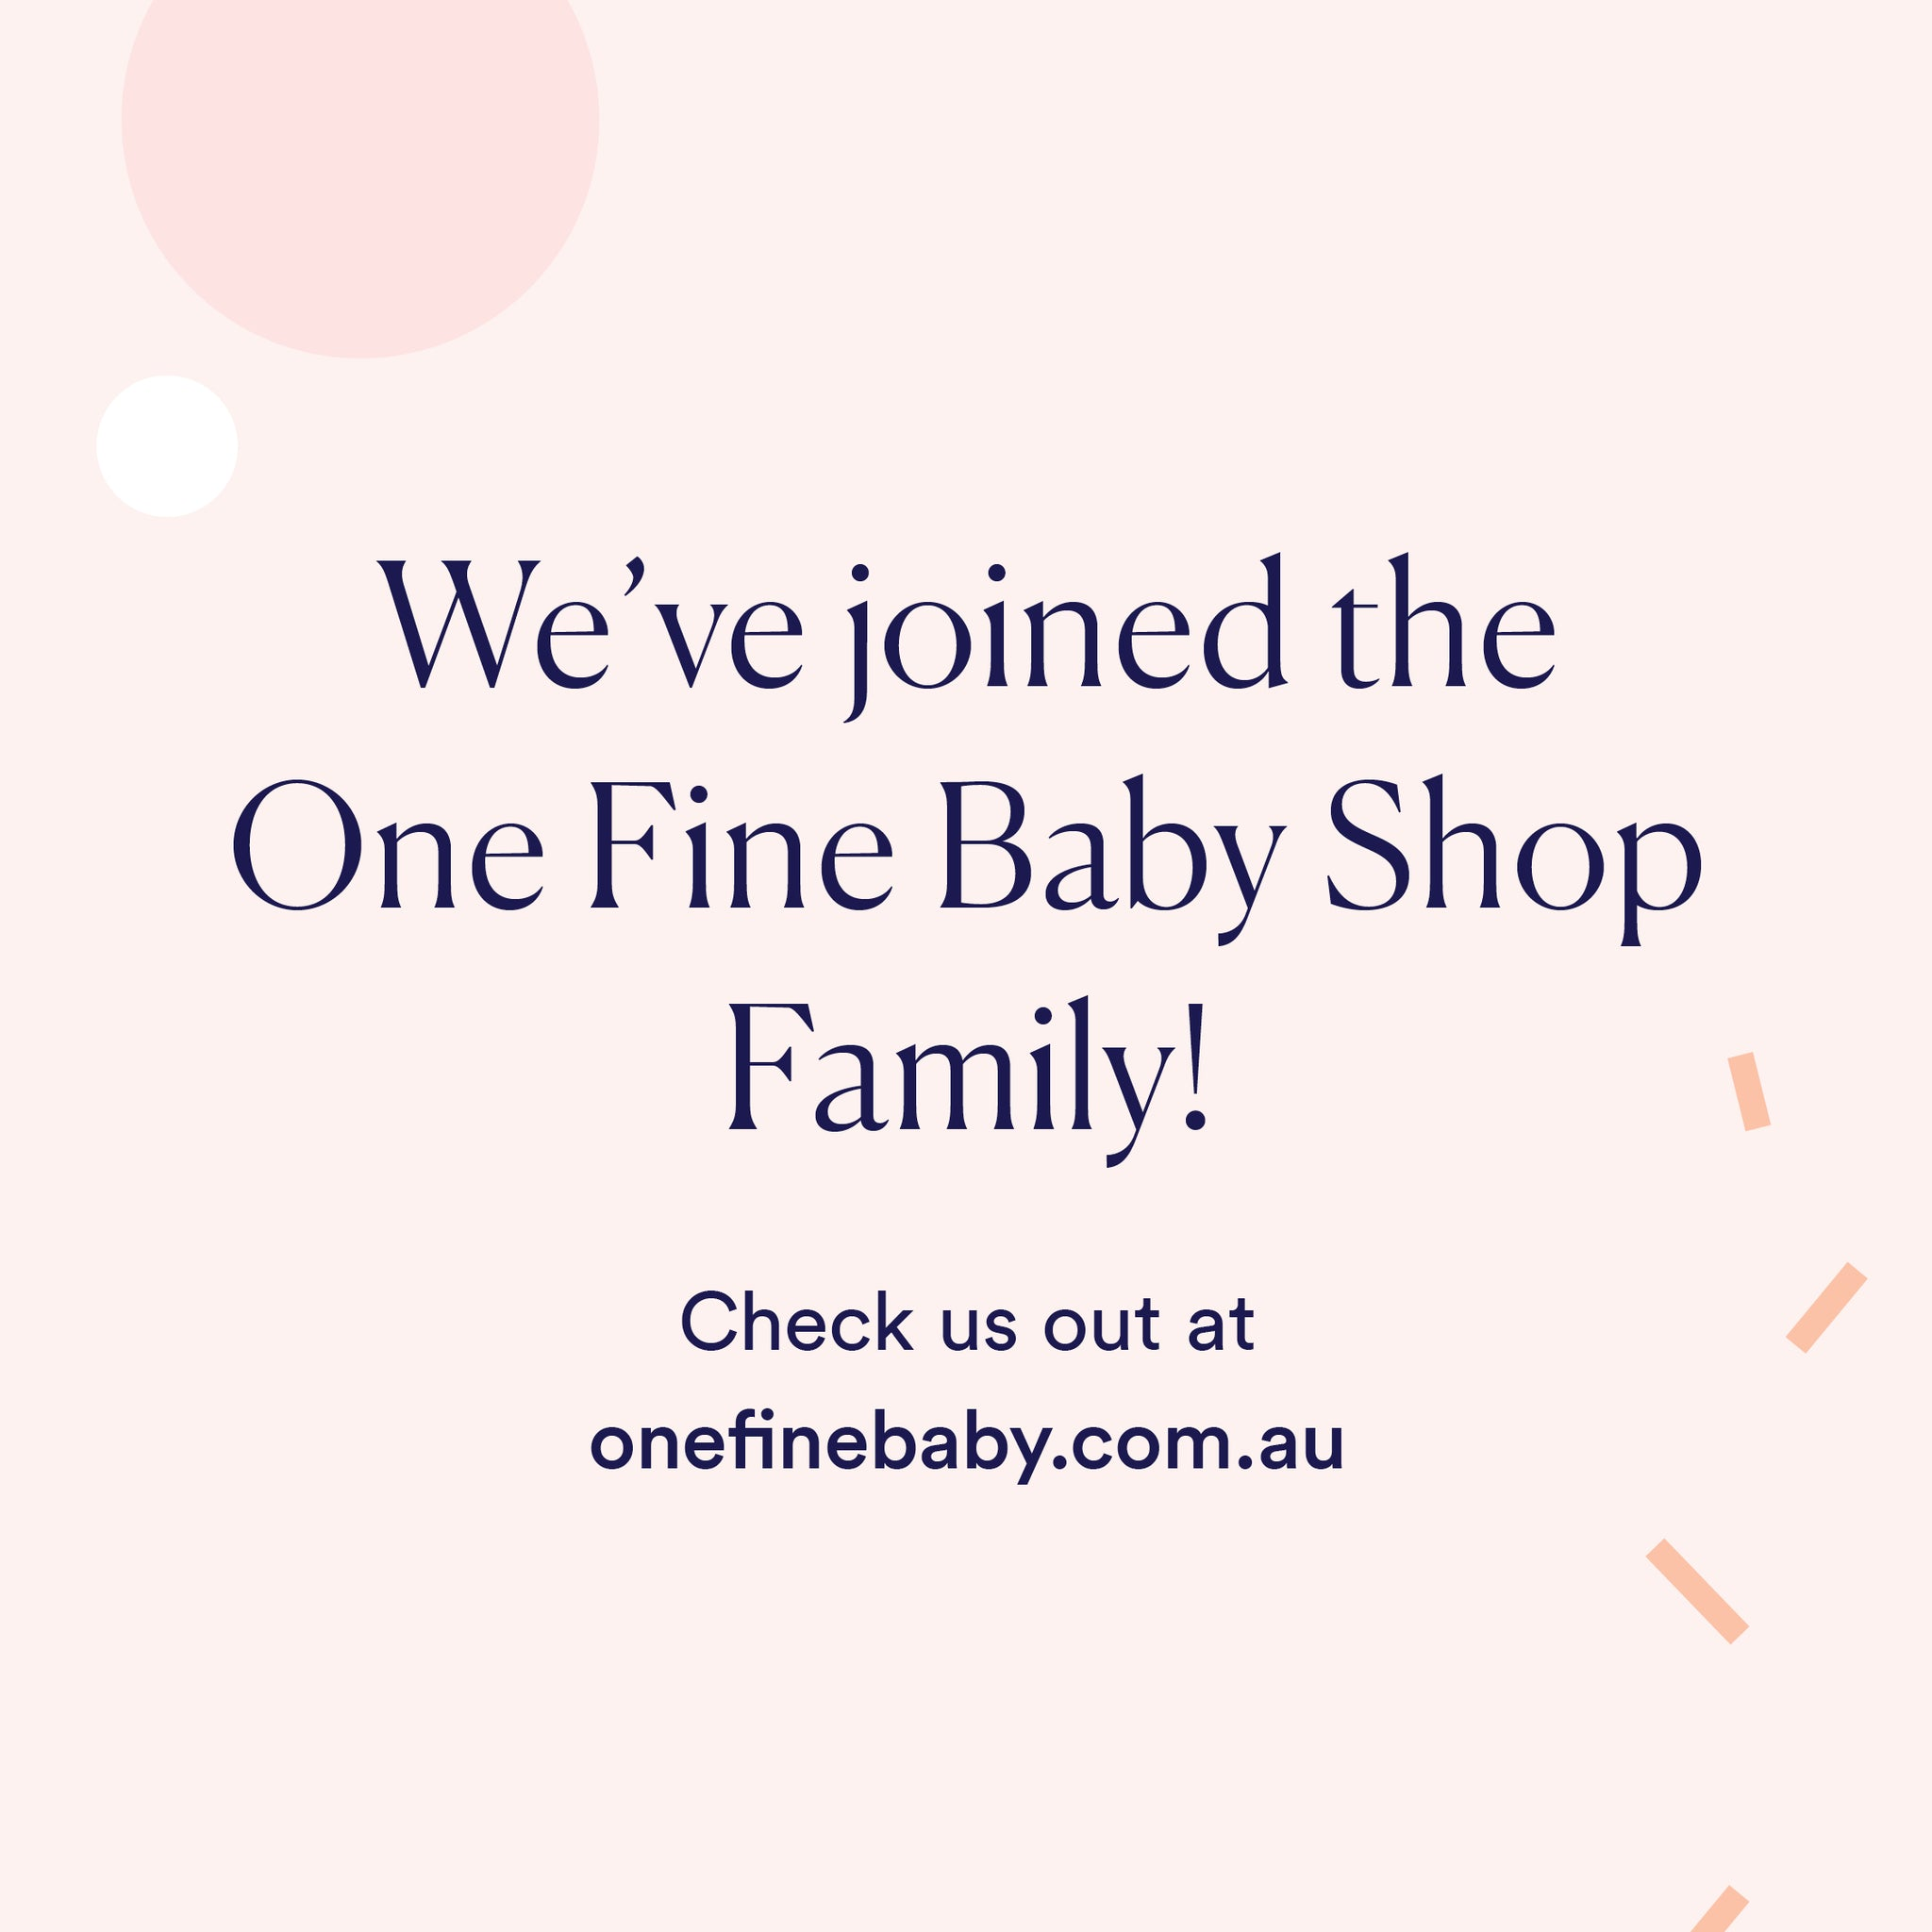 We've joined the One Fine Baby Shop family!